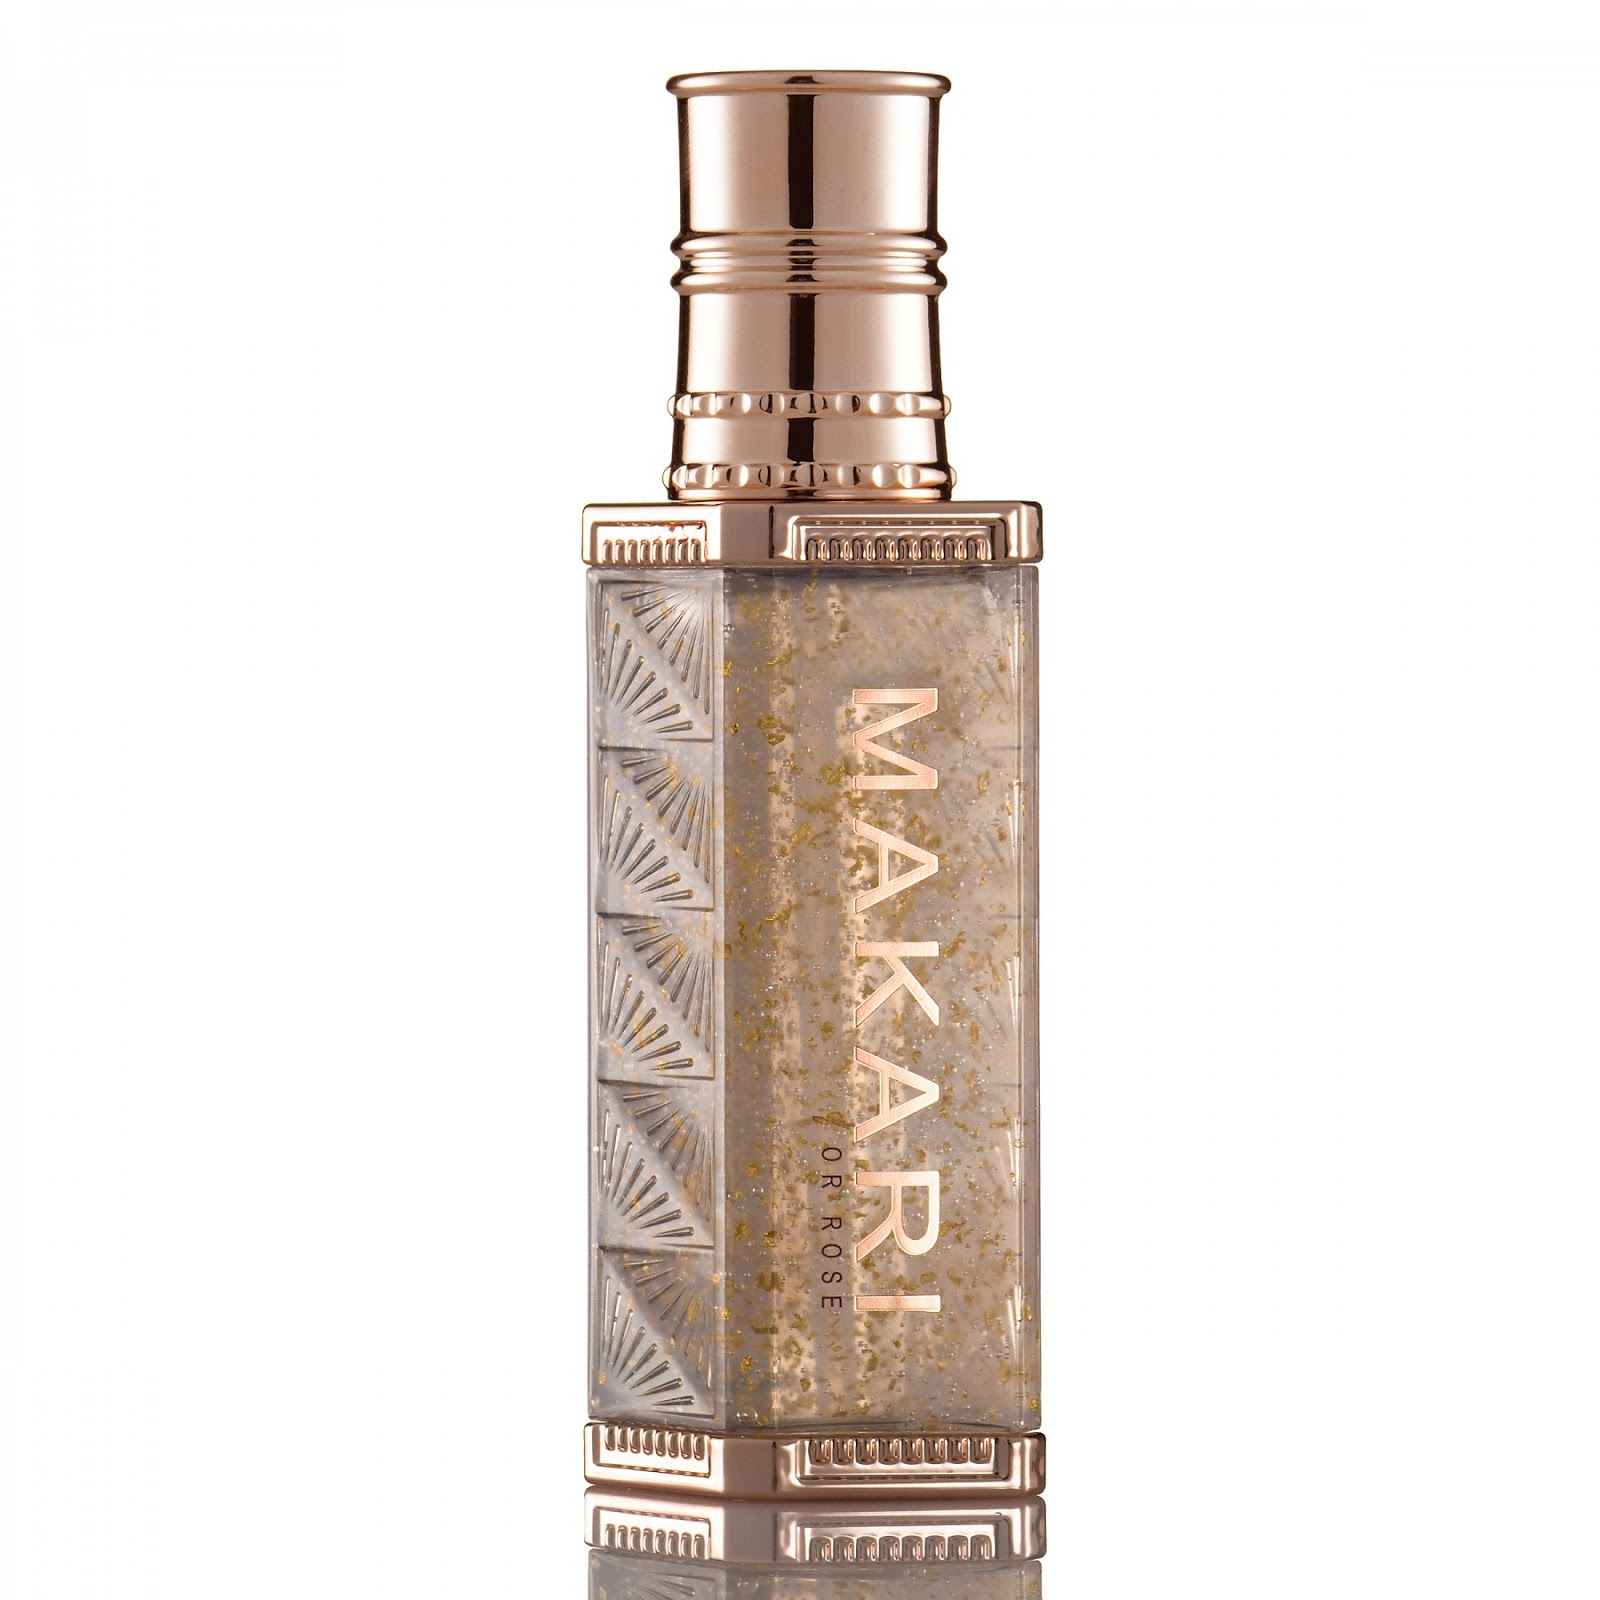 Review Makari De Suisse 24k Gold Skincare Collection Evergreen Reed Diffuser Set Serenity Dream 30 Ml This Luxurious Rejuvenating Serum Is Infused With Quick Absorbing Particules That Slows Down Collagen Depletion Reduces Wrinkles Fines Lines And